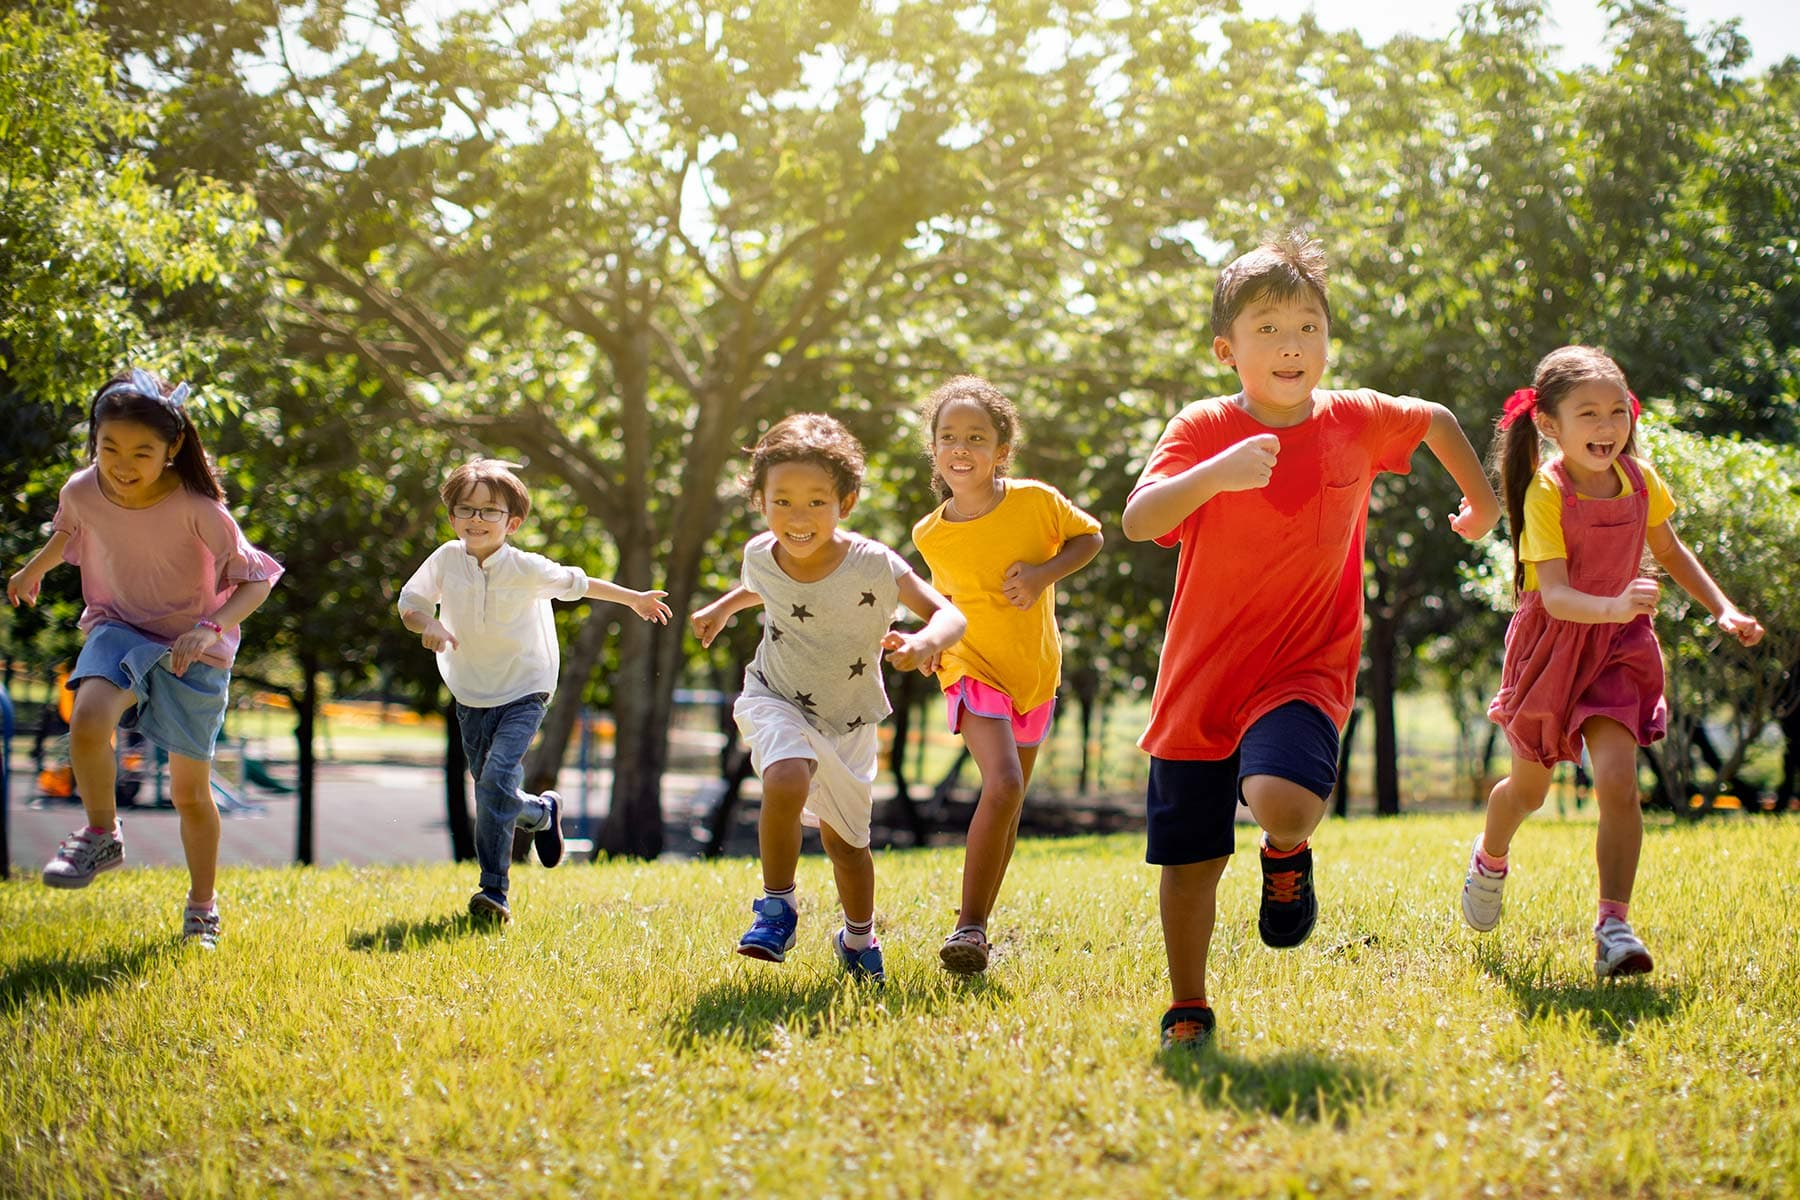 photo of young children laughing and running